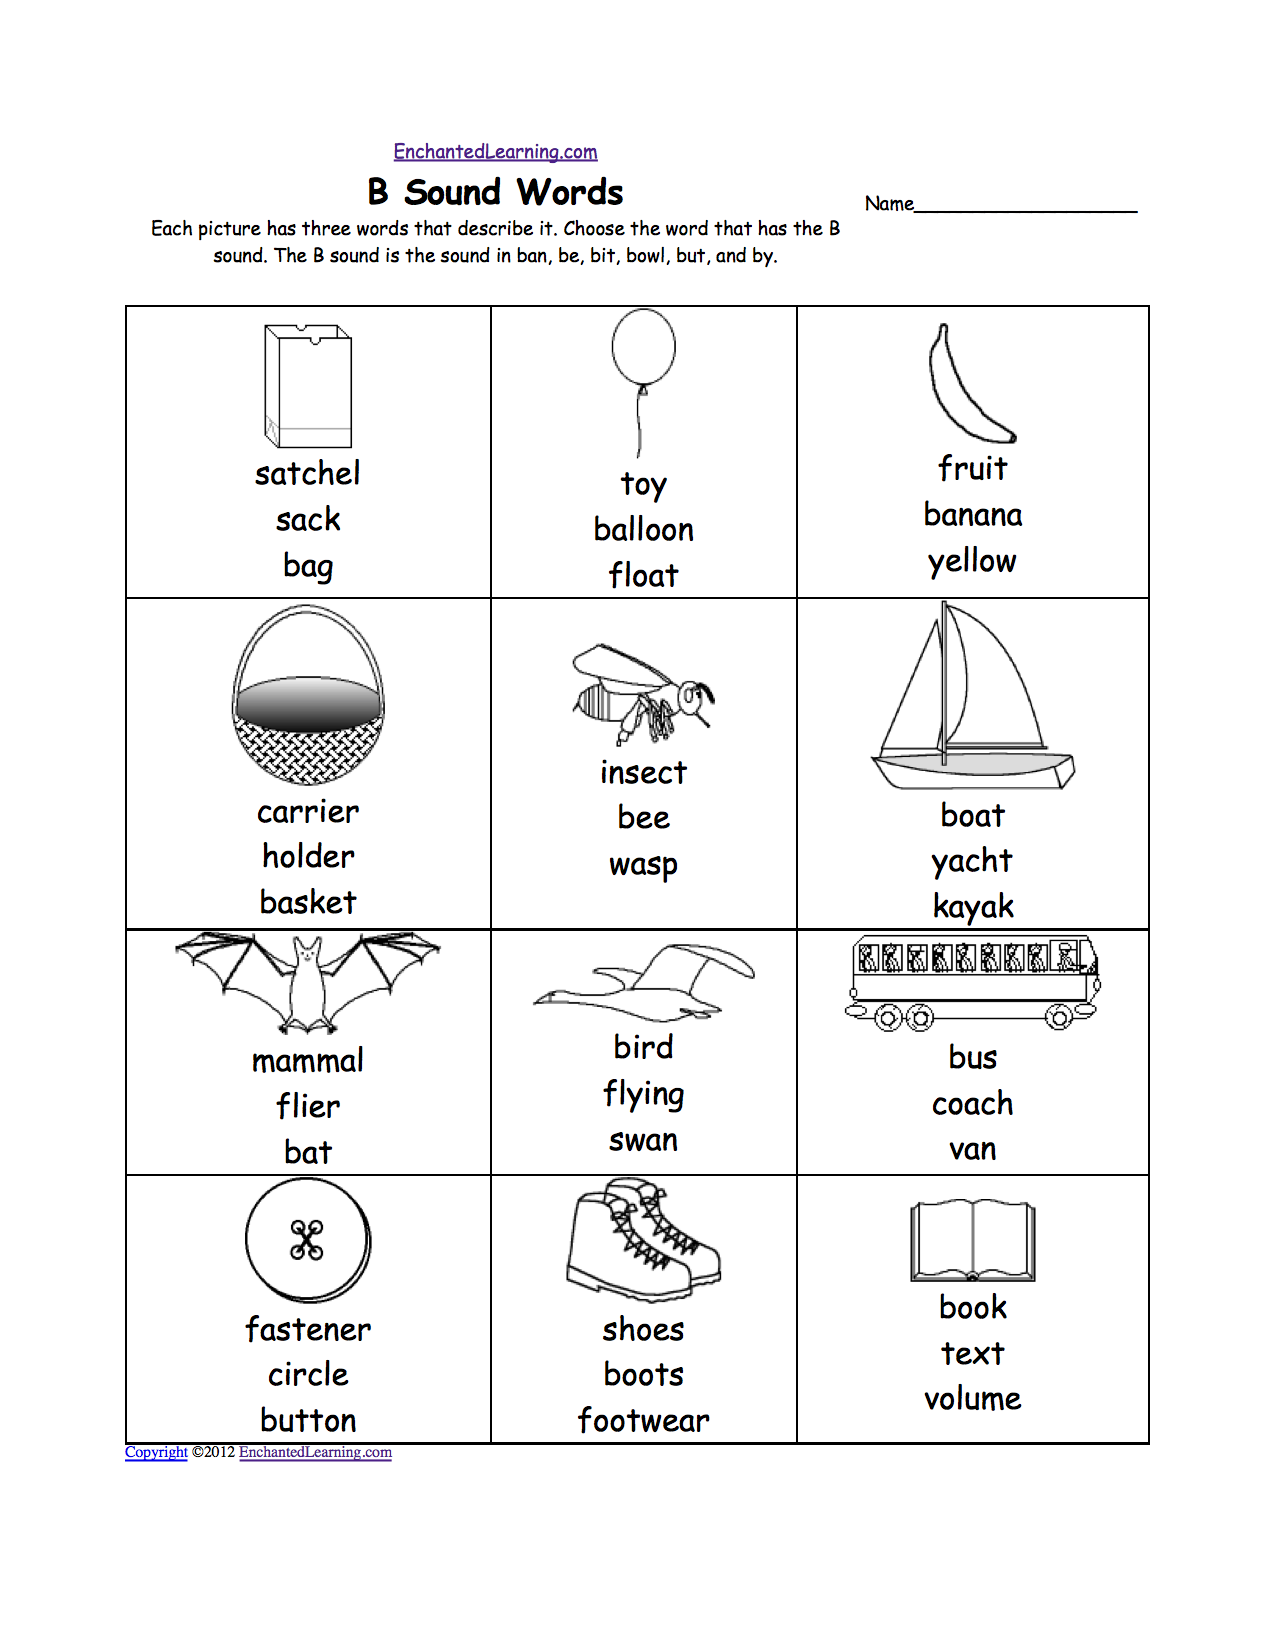 Weirdmailus  Terrific Phonics Worksheets Multiple Choice Worksheets To Print  With Engaging Quotbquot Sound Phonics Worksheet Multiple Choice Each Picture Has Three Words That Describe It Choose The Word That Has A Quotbquot Sound The Quotbquot Sound Is The Sound  With Comely Gram Formula Mass Worksheet Also Books Never Written Worksheet Answers In Addition Simile And Metaphor Worksheet And Preschool Worksheets Age  As Well As Letter J Worksheets Additionally Genetics Pedigree Worksheet From Enchantedlearningcom With Weirdmailus  Engaging Phonics Worksheets Multiple Choice Worksheets To Print  With Comely Quotbquot Sound Phonics Worksheet Multiple Choice Each Picture Has Three Words That Describe It Choose The Word That Has A Quotbquot Sound The Quotbquot Sound Is The Sound  And Terrific Gram Formula Mass Worksheet Also Books Never Written Worksheet Answers In Addition Simile And Metaphor Worksheet From Enchantedlearningcom